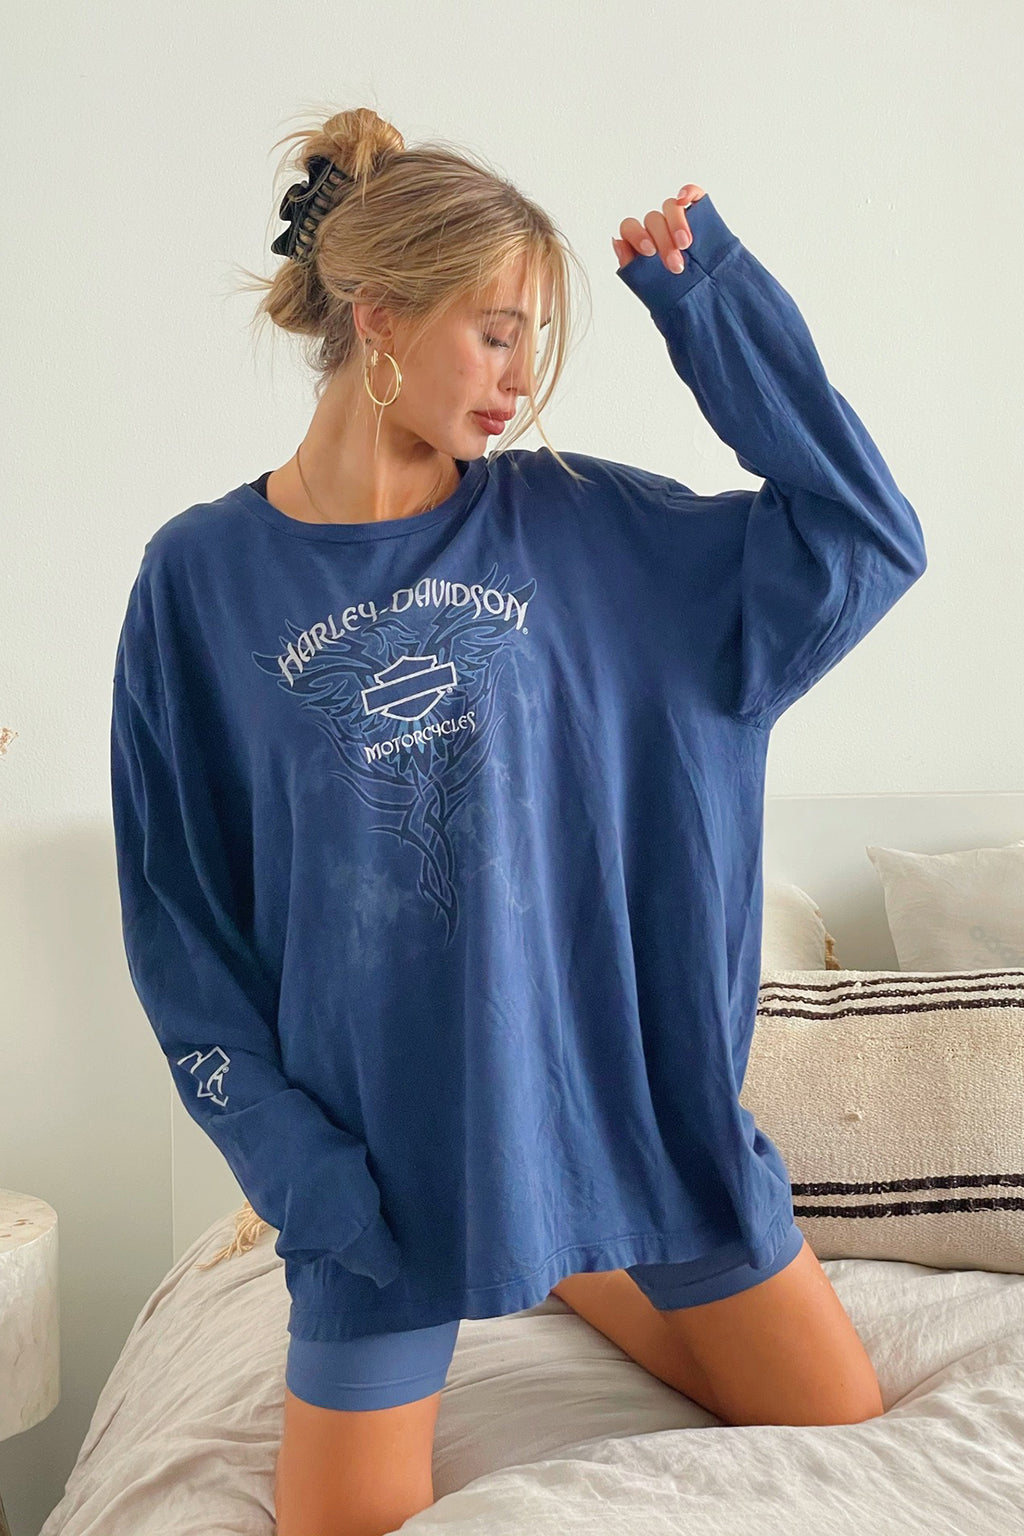 New Hampshire Vintage Harley Davidson Long Sleeve Tee